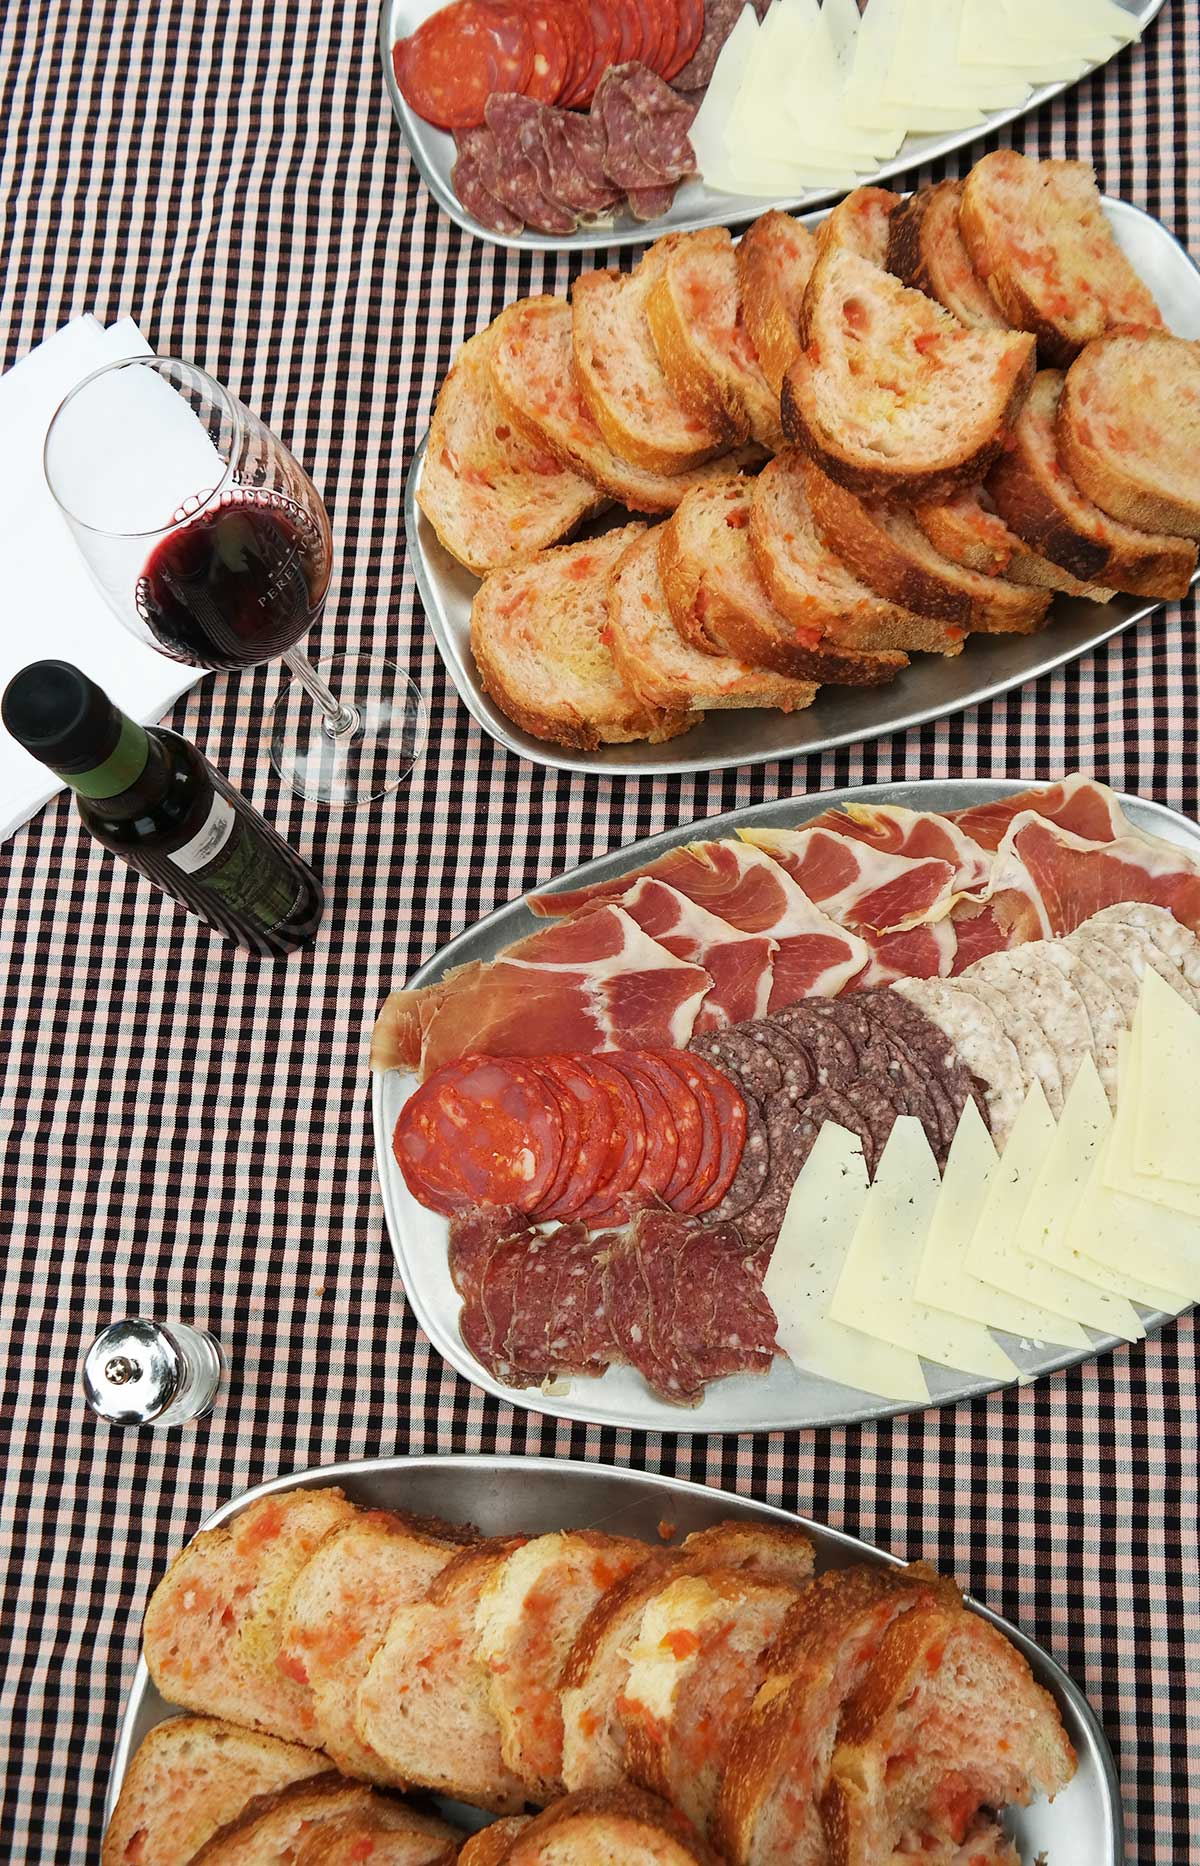 How to host a Spainish style picnic or tapas wine tasting party.